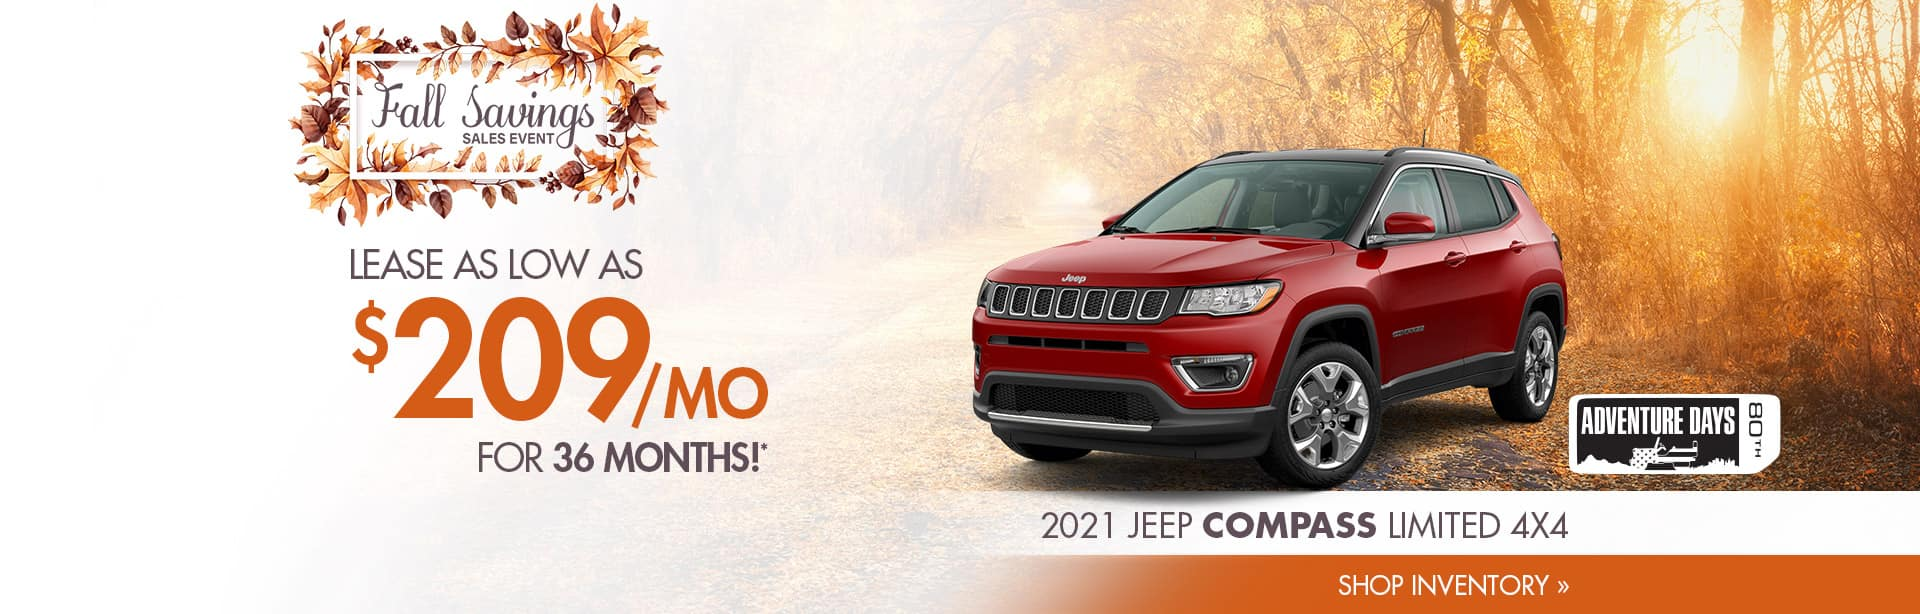 Best Lease deal on a New Jeep Compass near Frankfort, Indiana